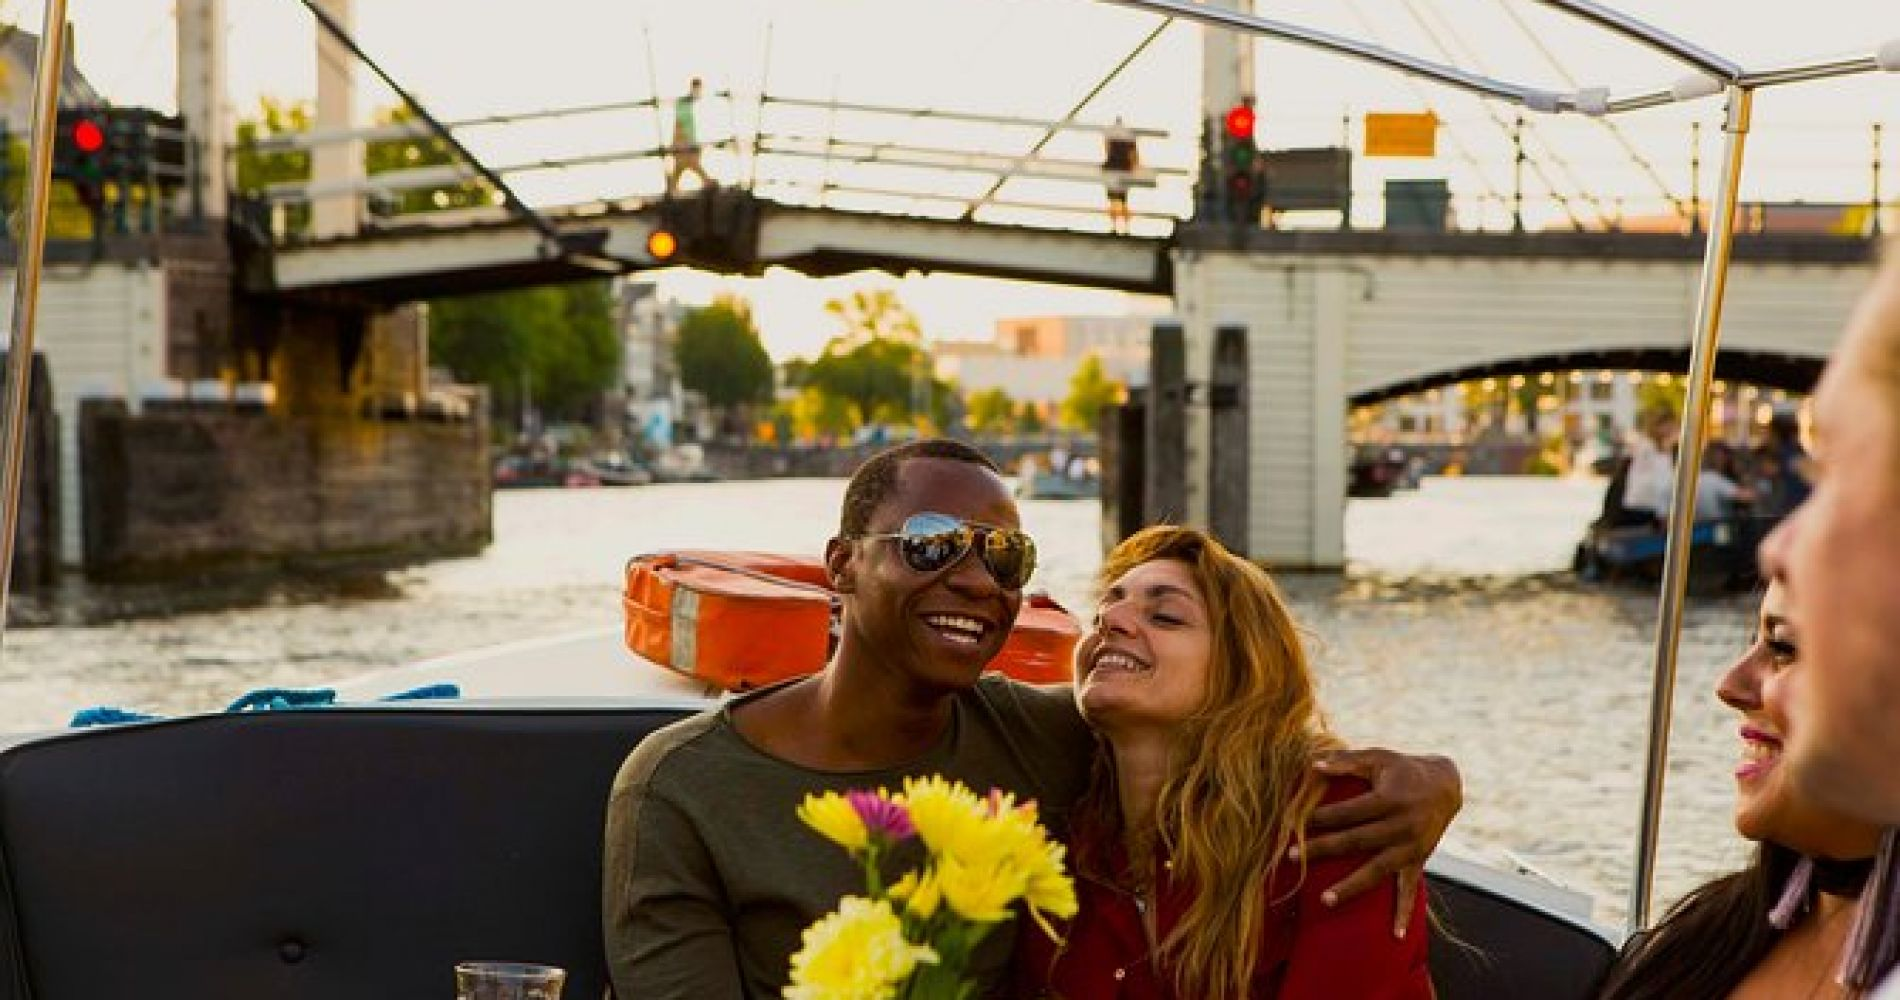 Romantic Canal Cruise listen to Stories of Love with Prosecco and Dutch snacks